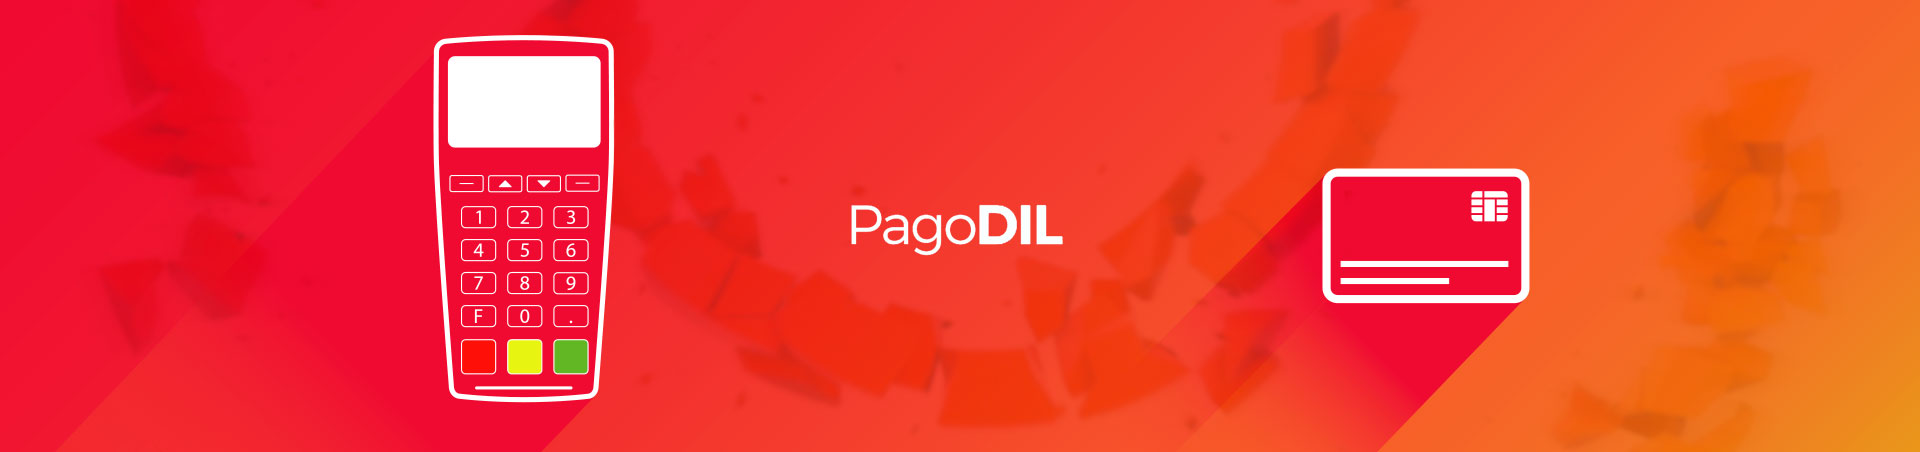 PagoDIL by Cofidis - Mobile